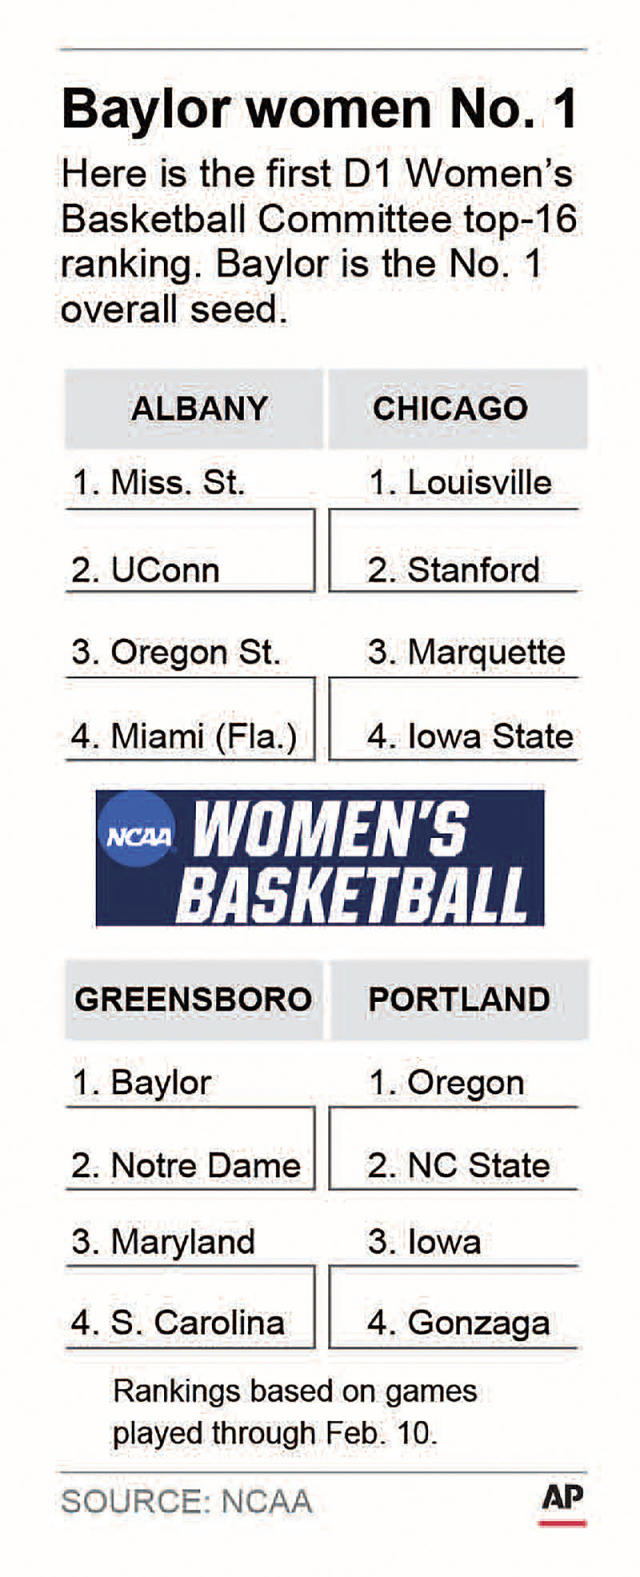 Graphic shows the DI Women's Basketball Committee top-16 ranking reveal with region assignments; 1c x 4 1/2 inches;;